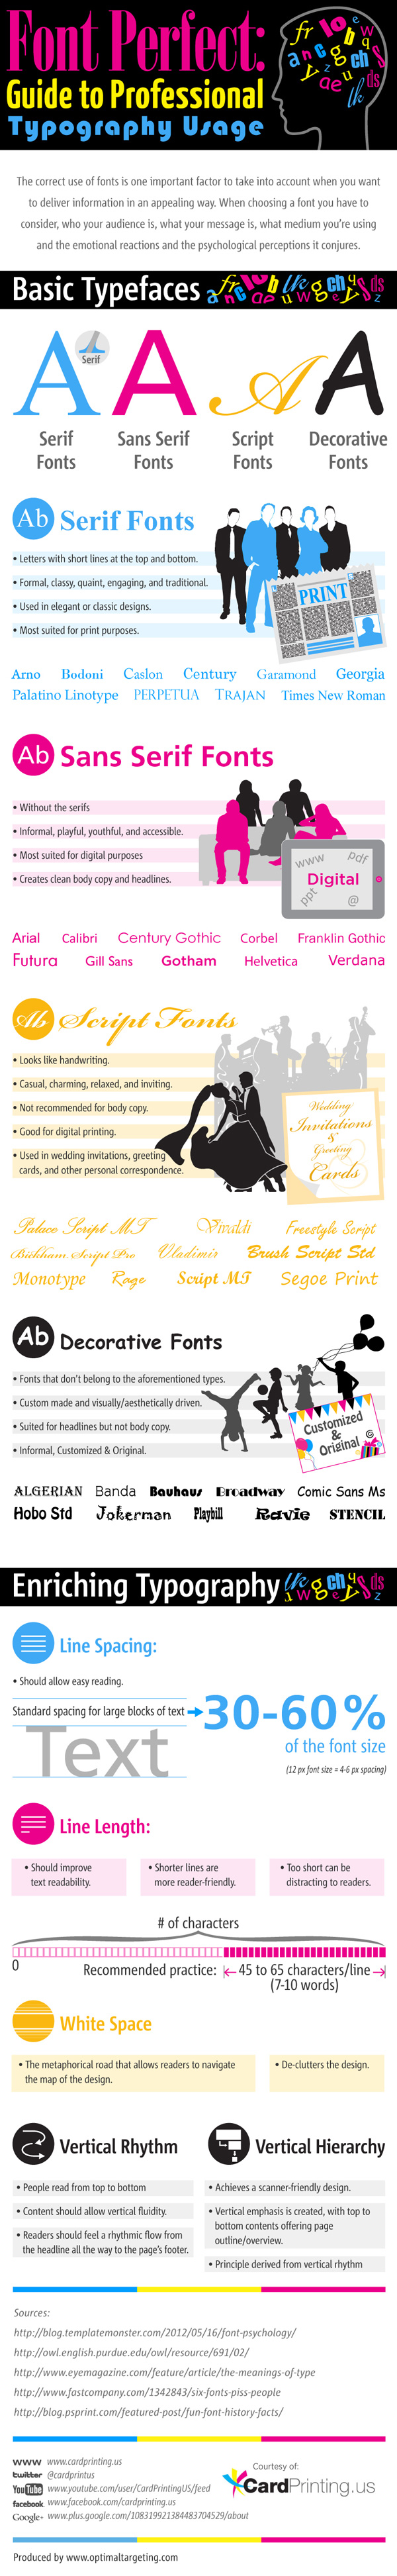 Typography-Usage-Tips